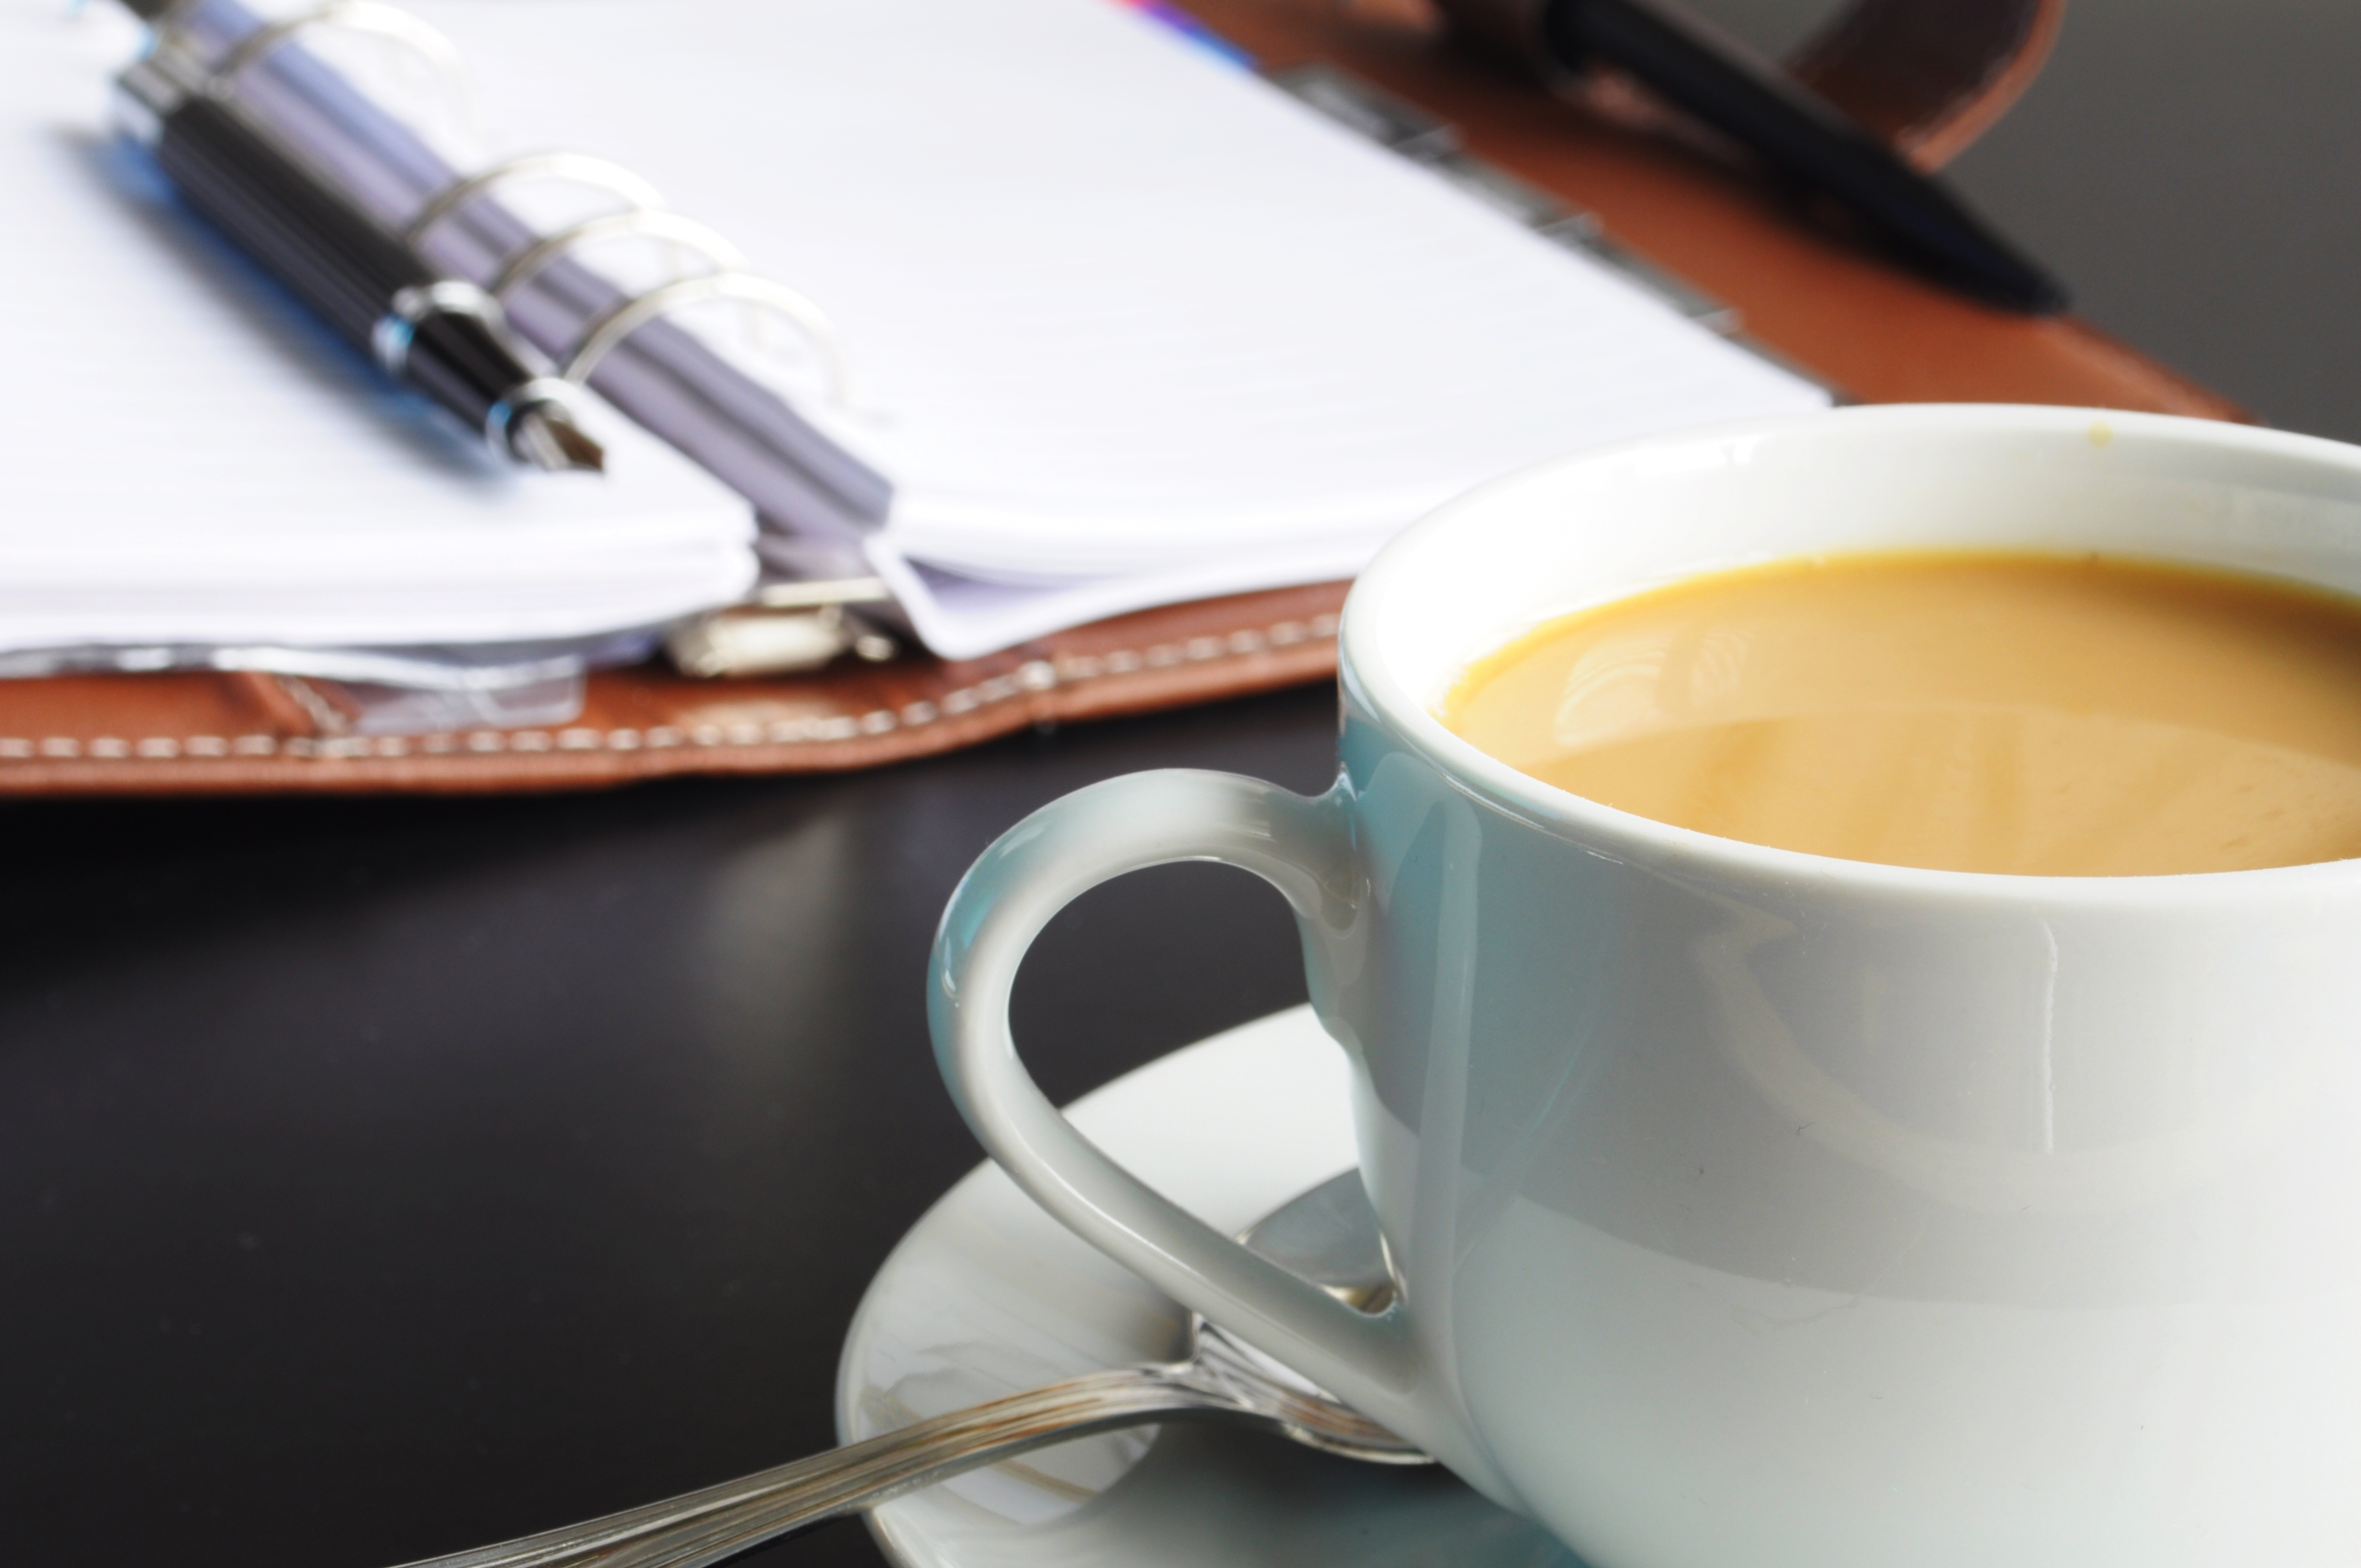 coffee-at-work